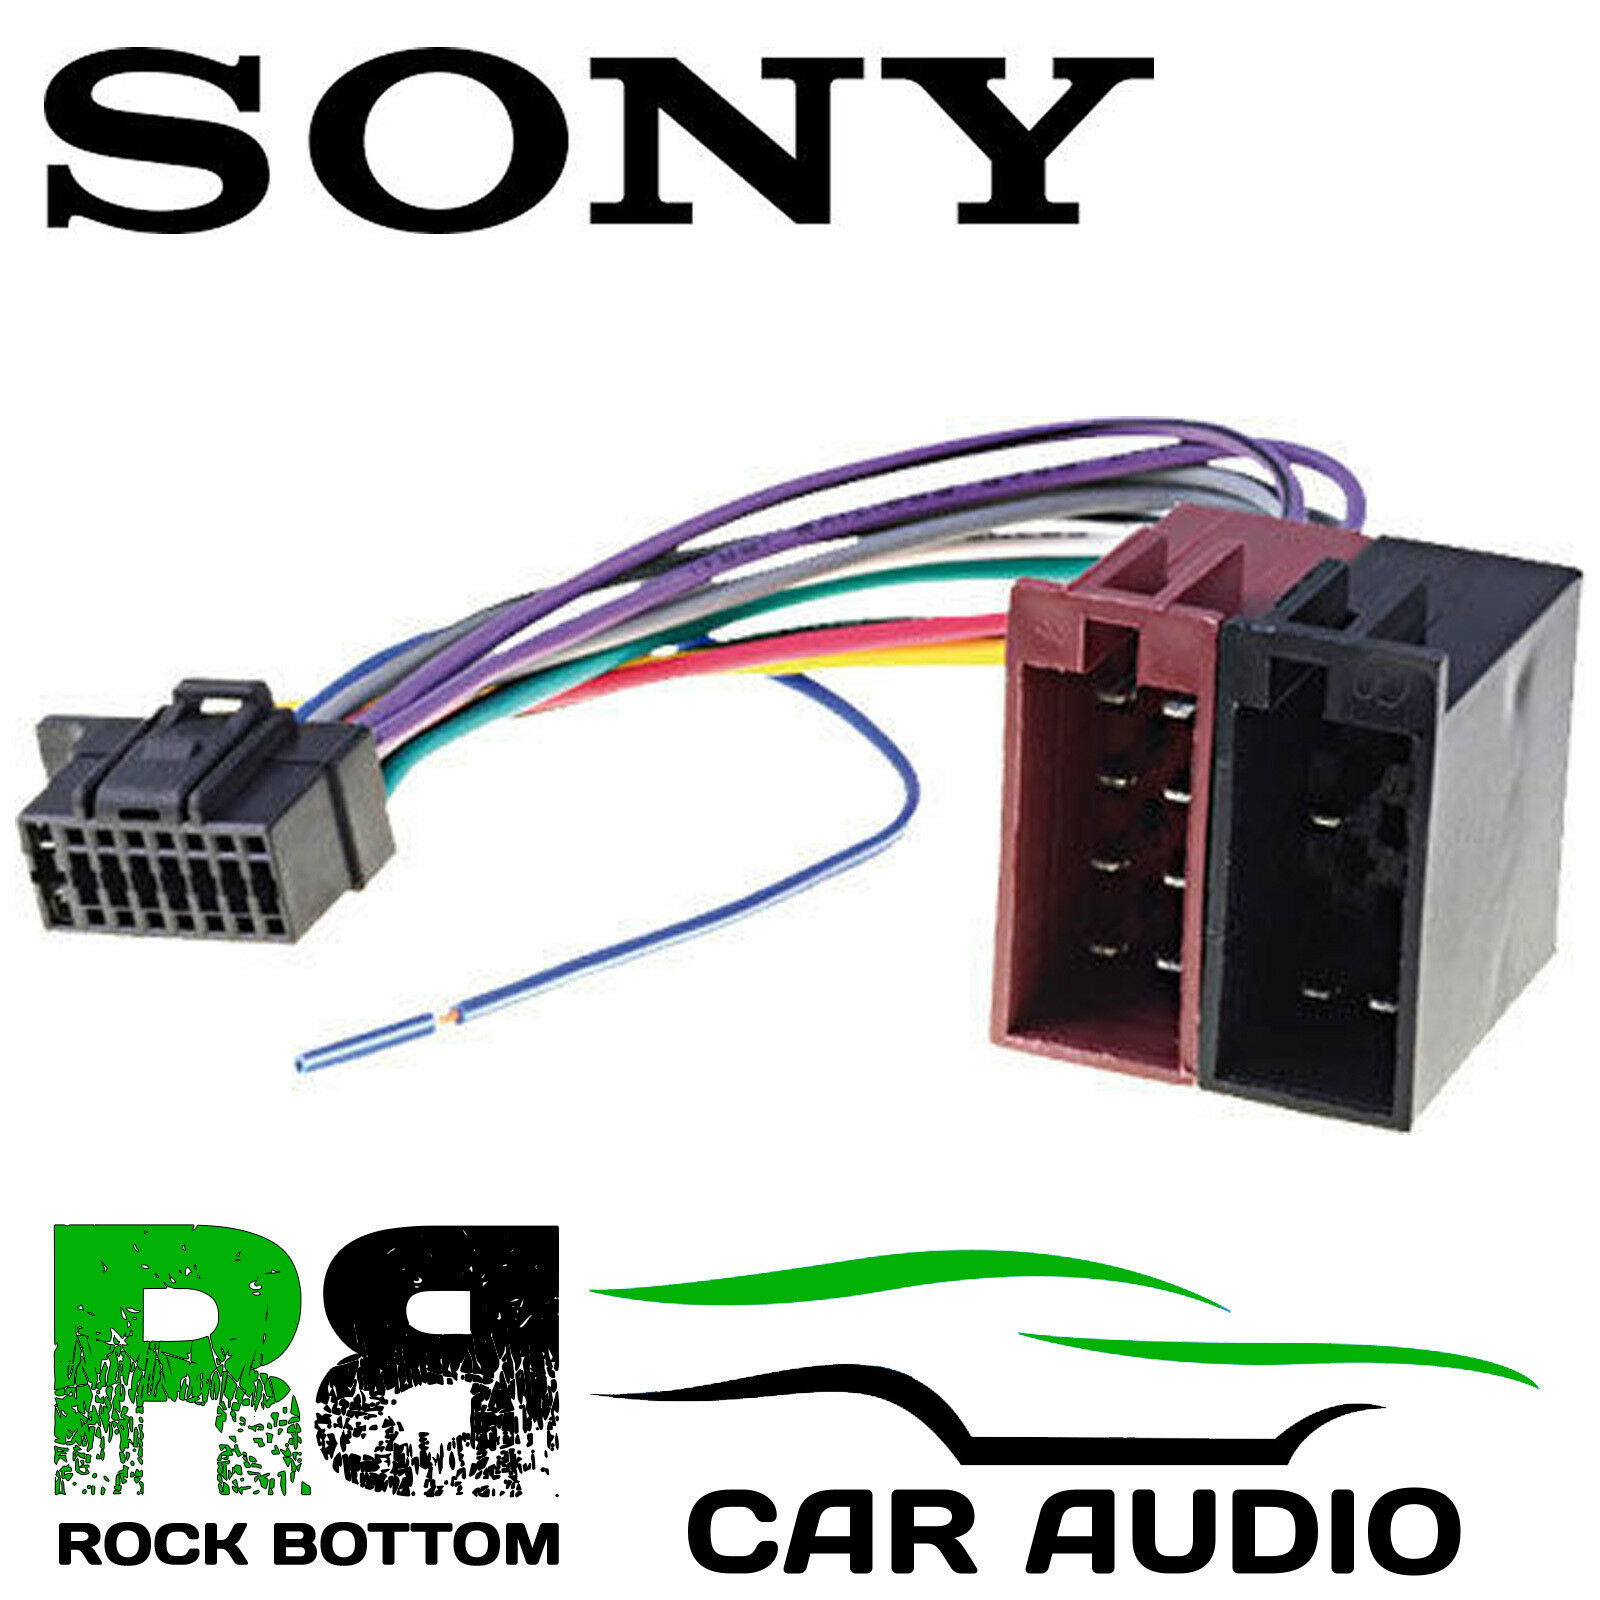 Sony Cdx Gt570ui Car Radio Stereo 16 Pin Wiring Harness Loom Iso 1 Of 1free Shipping